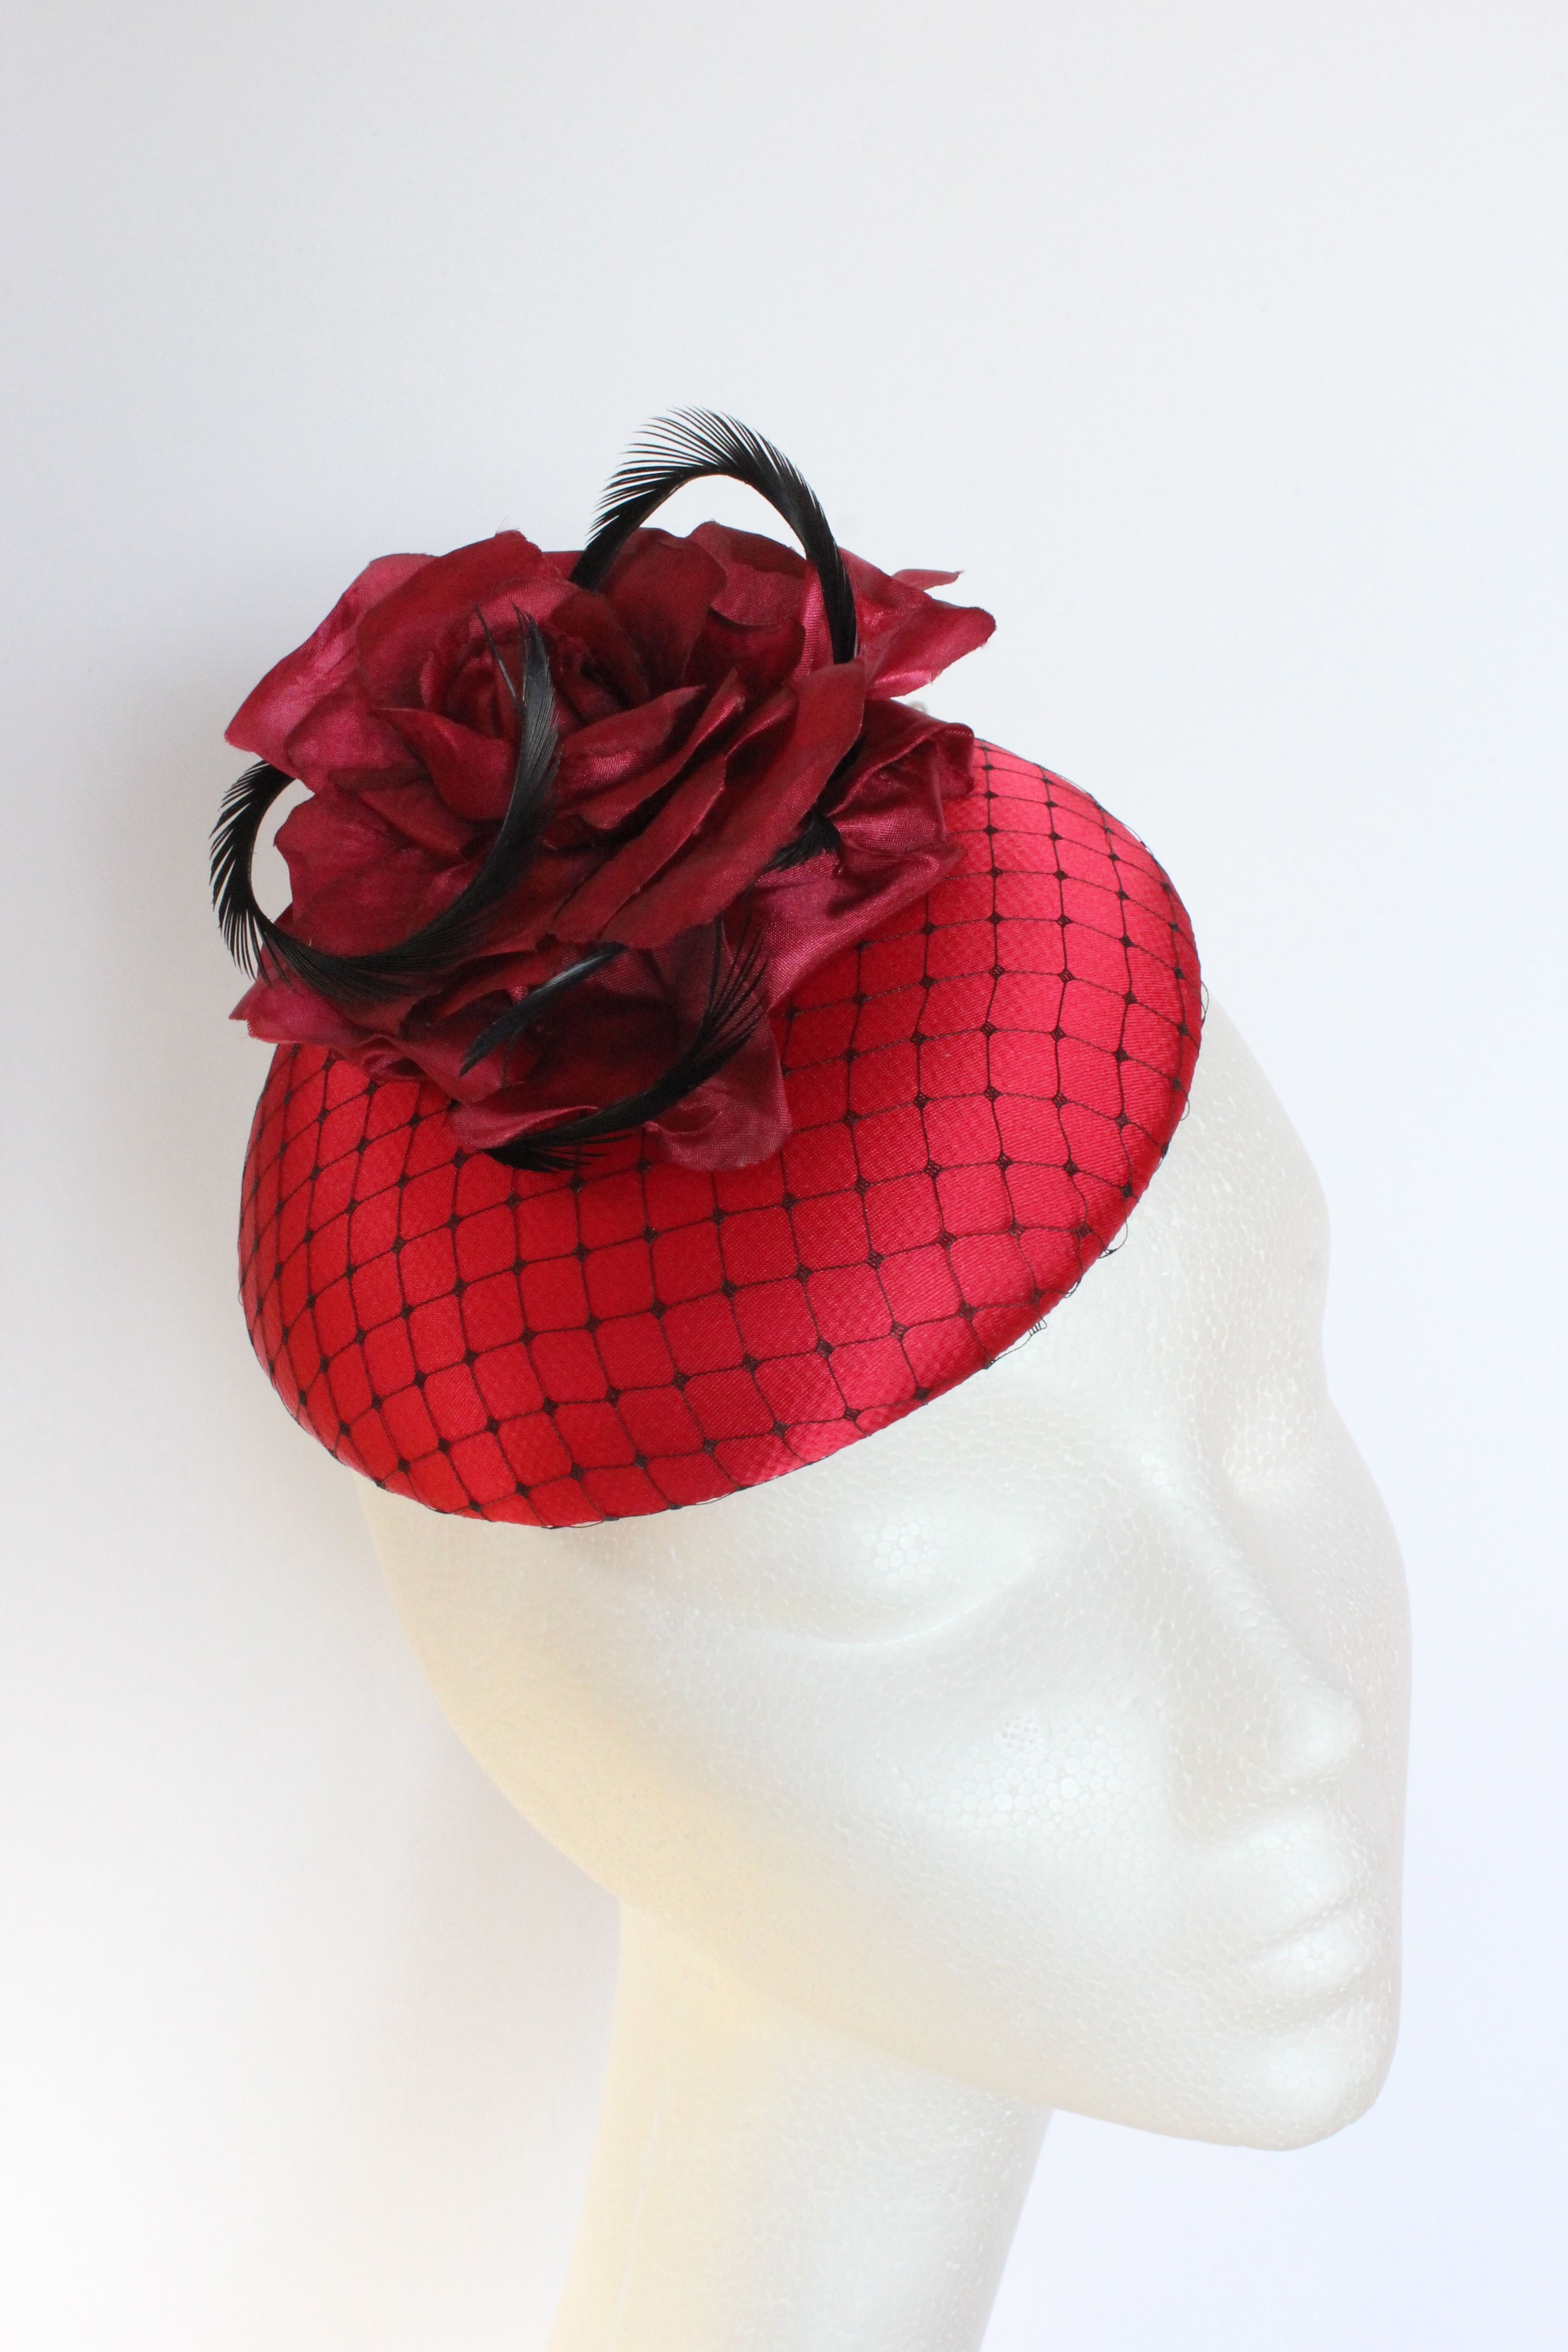 Red Bases For Living Room Decor: Ruby Red Base With Black Netting, Red Rose And Black